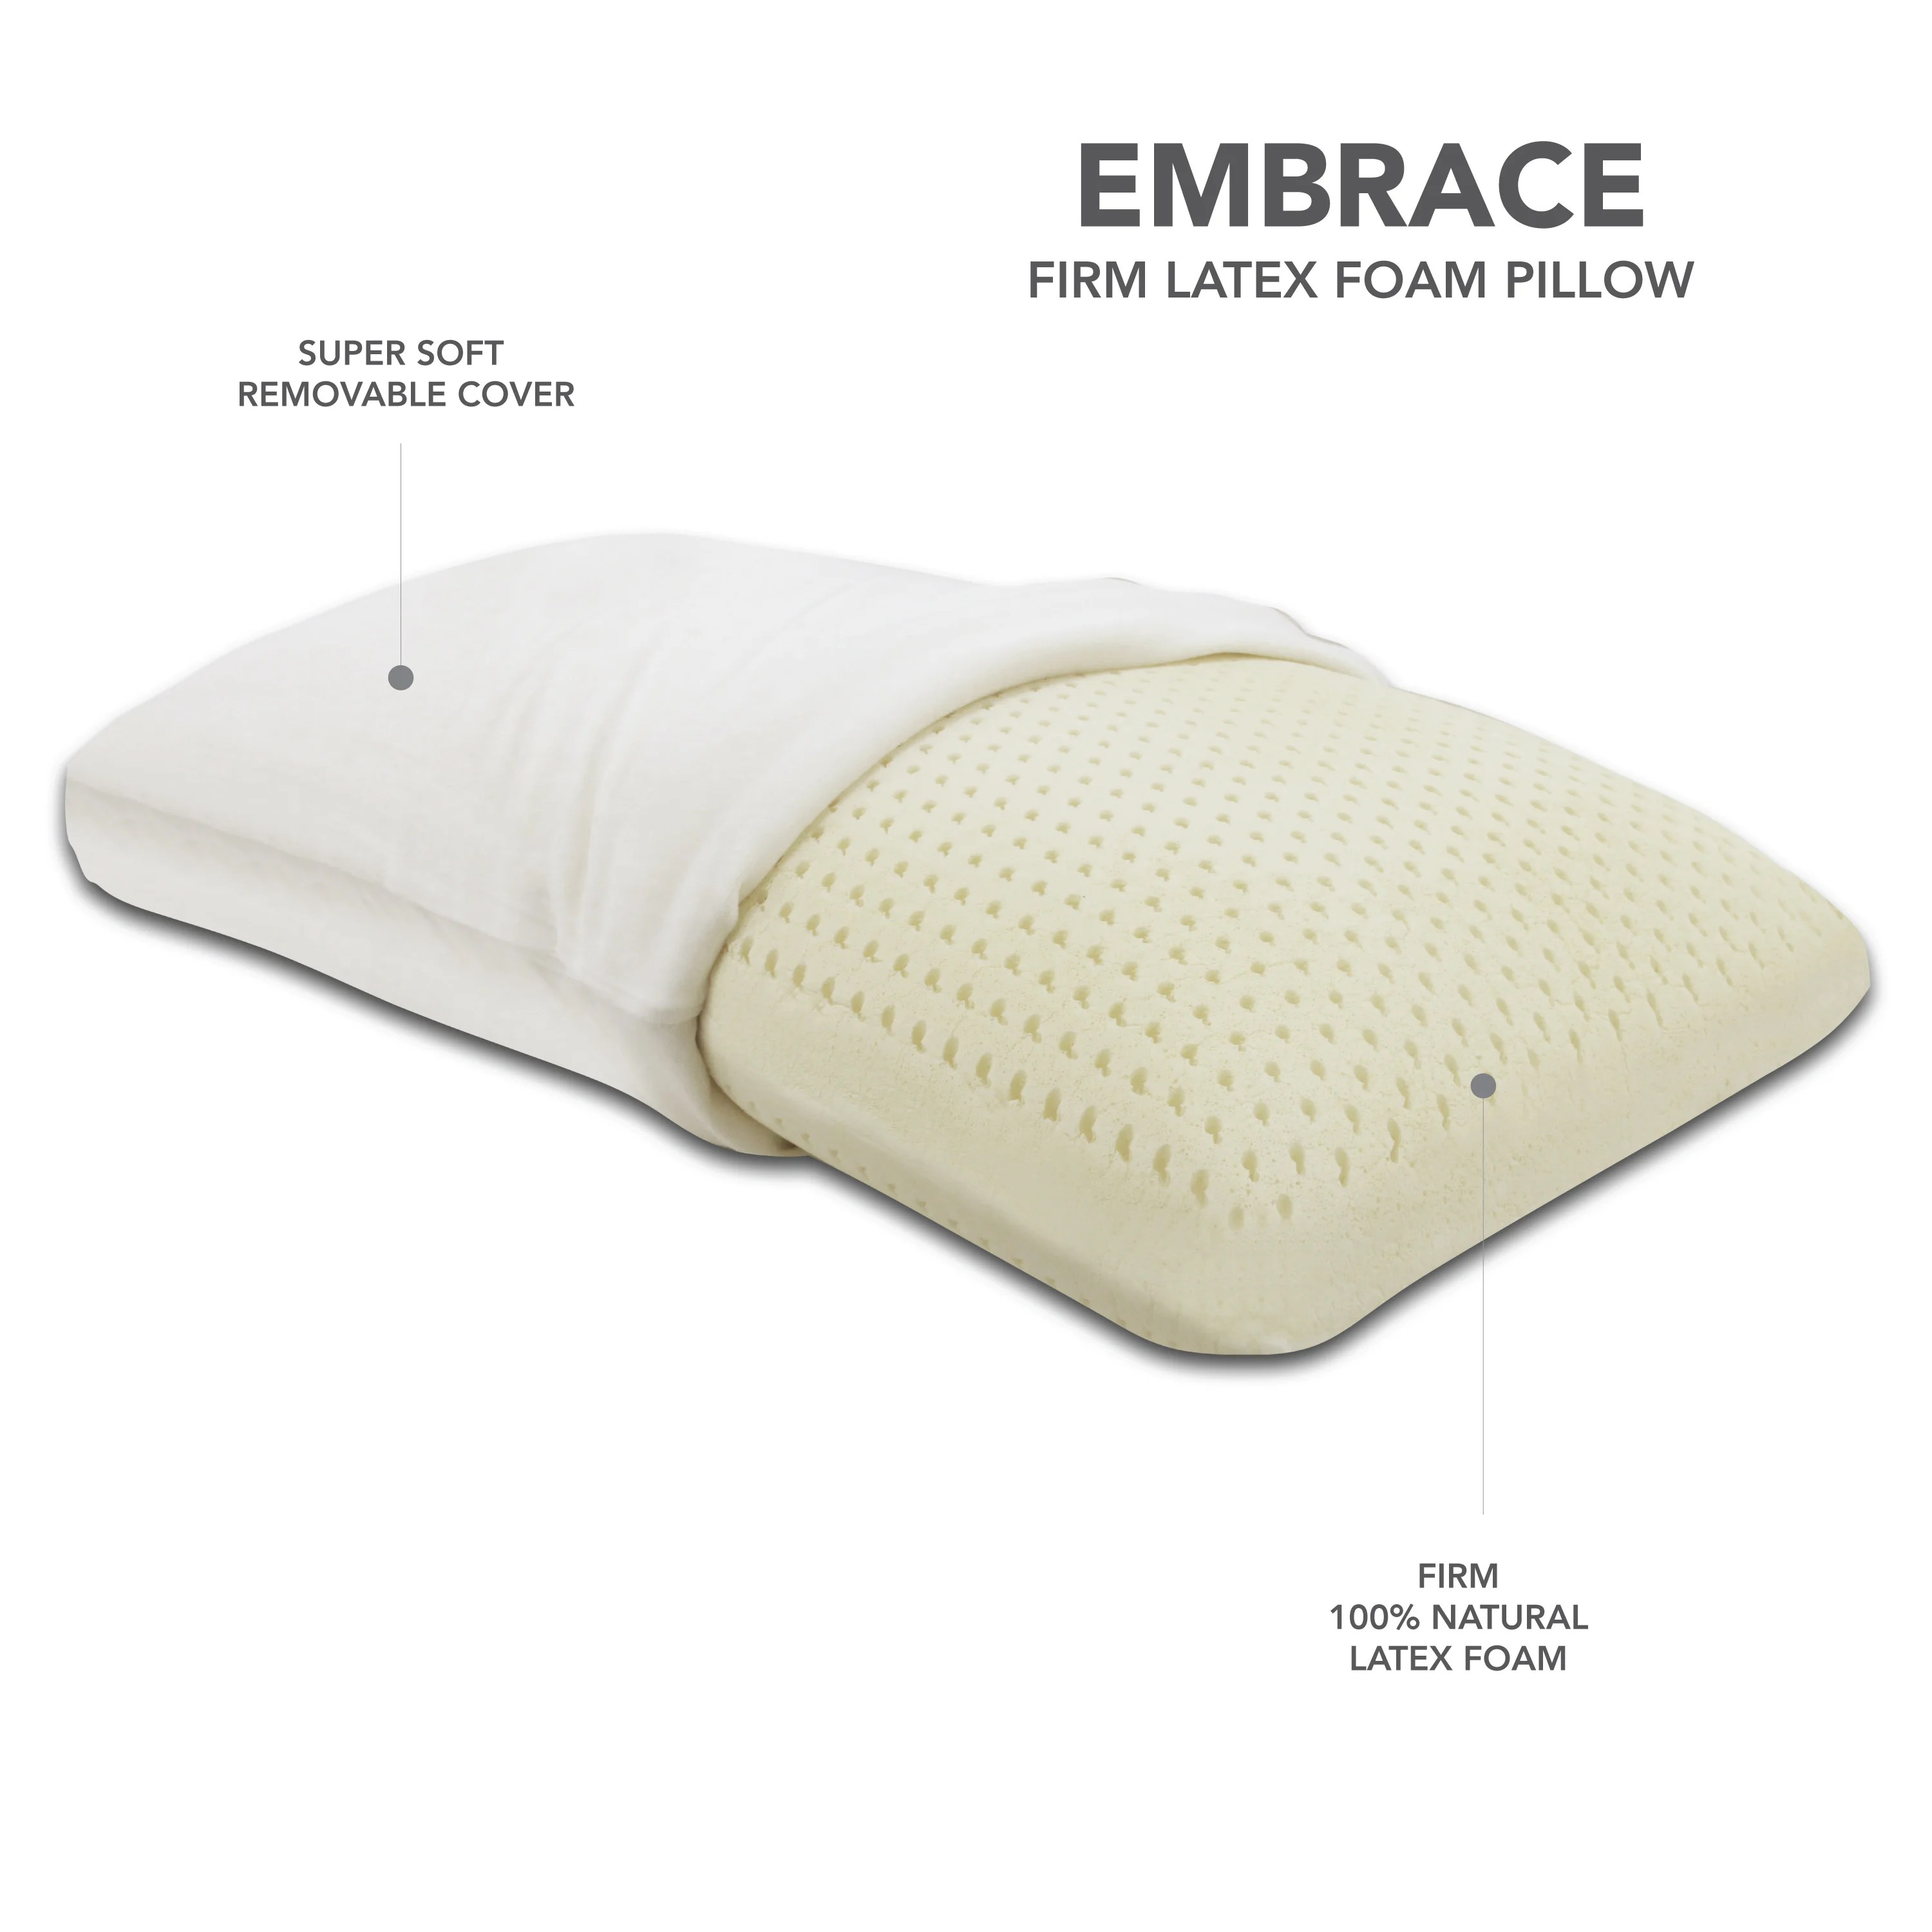 Latex Foam Mattress Embrace Firm 100 Percent Ventilated Dunlop Latex Foam Pillow